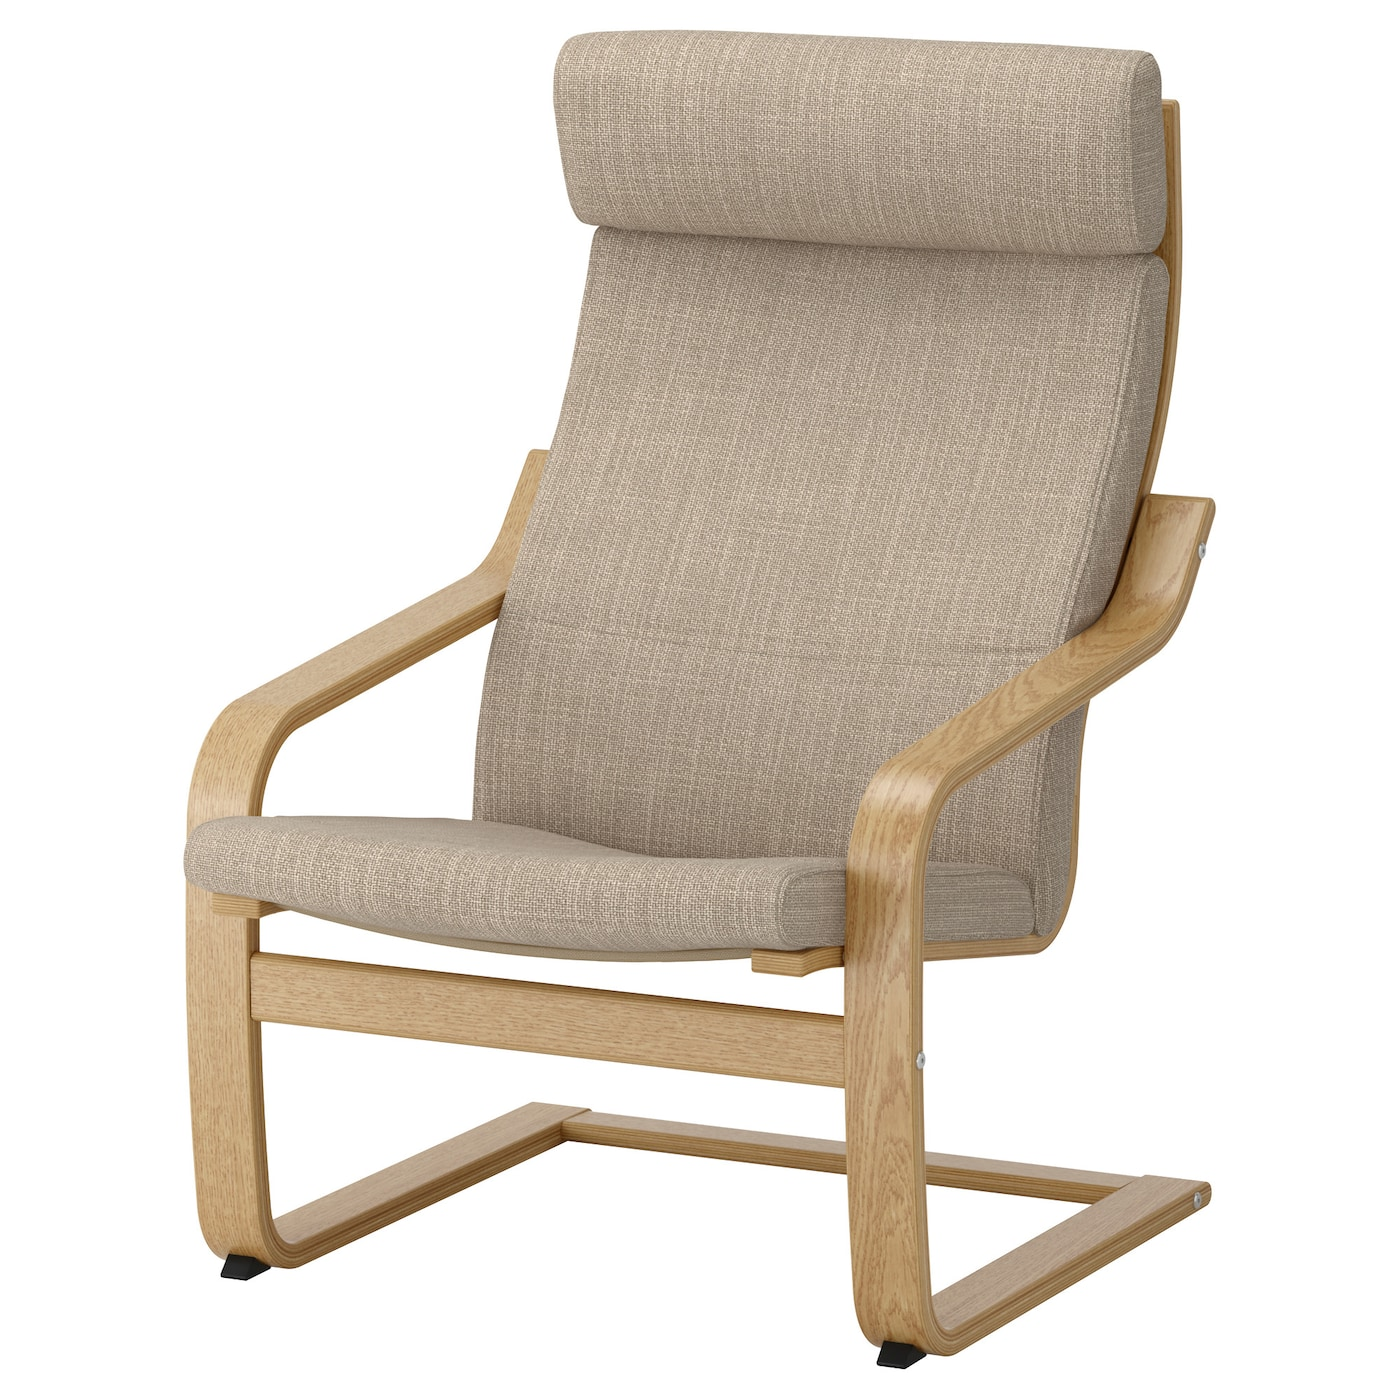 IKEA POÄNG armchair Layer-glued bent oak gives comfortable resilience.